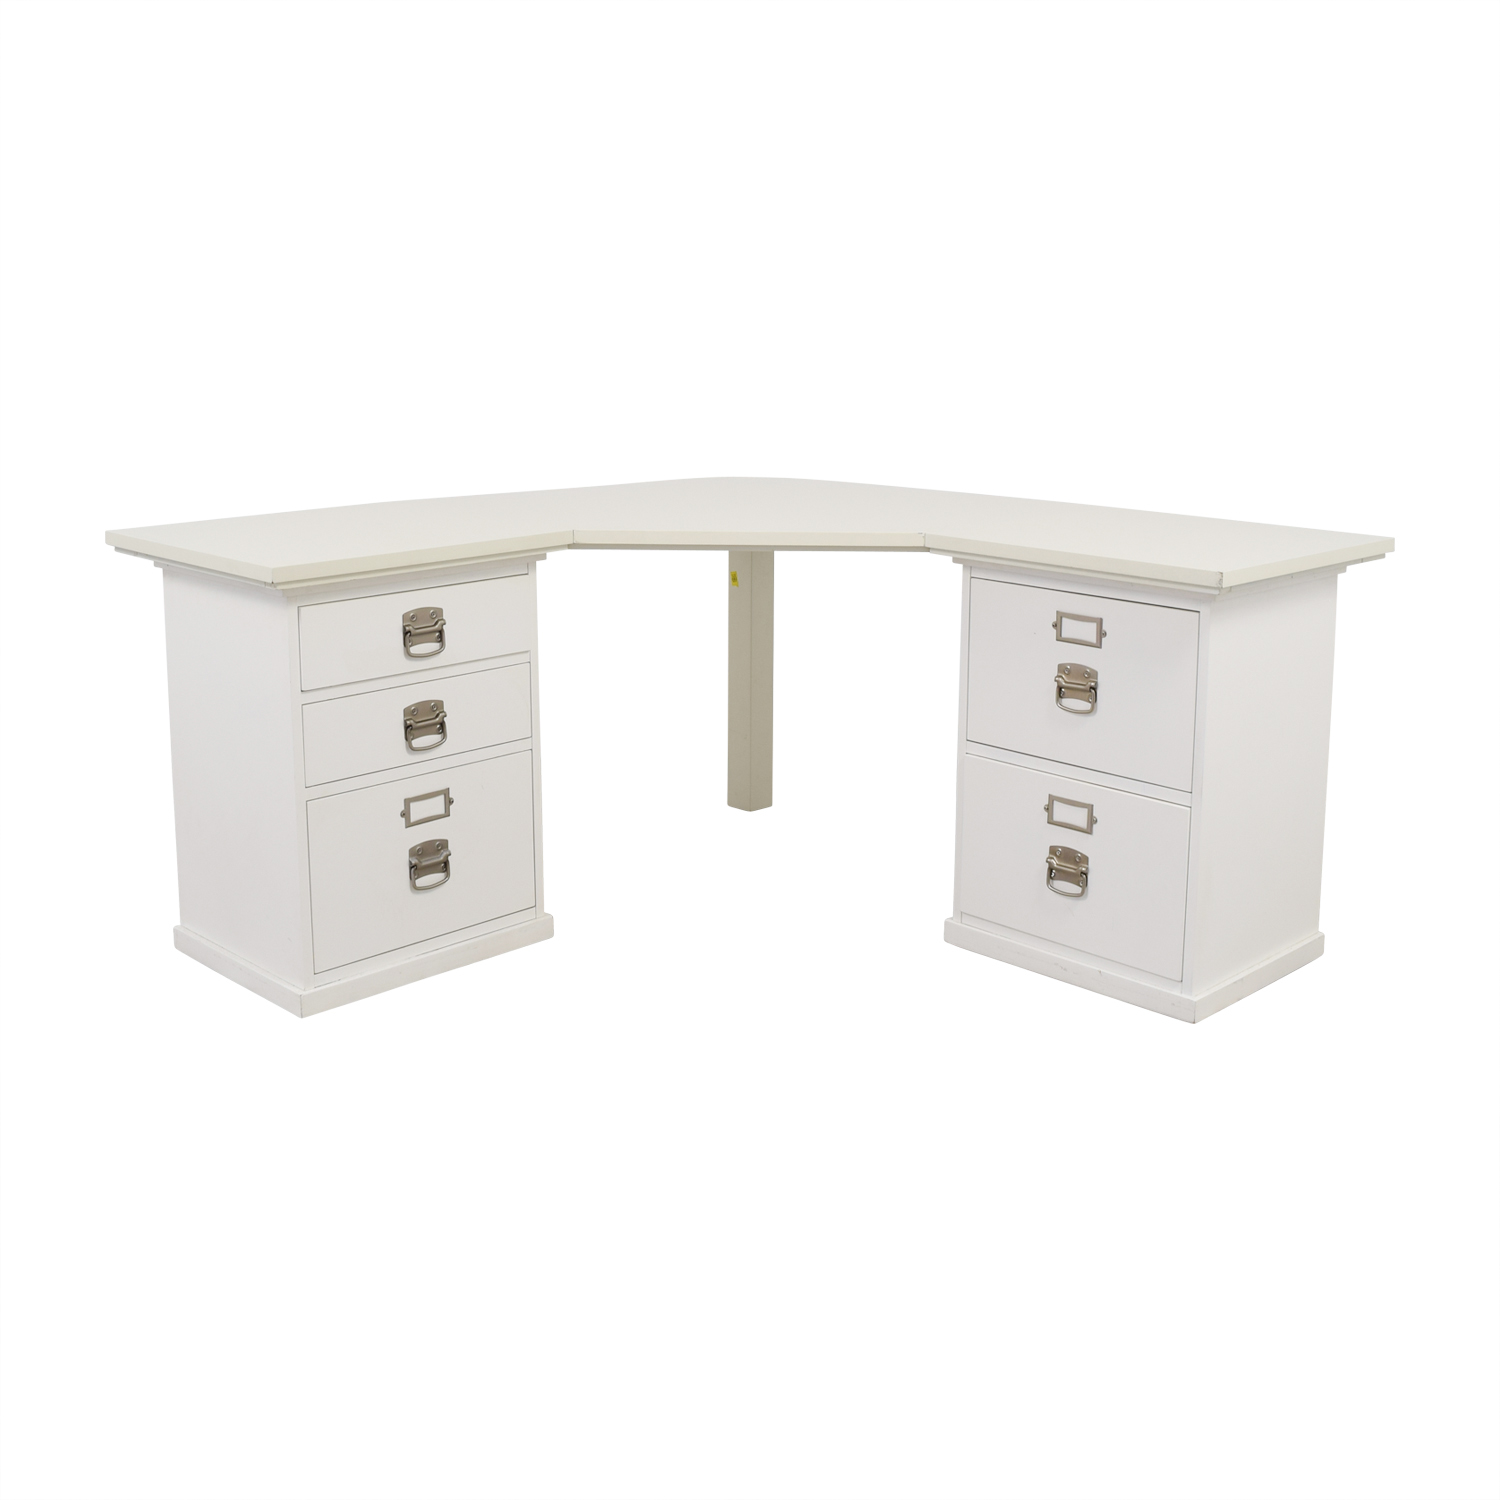 Pottery Barn Pottery Barn White Five-Drawer Corner Desk second hand